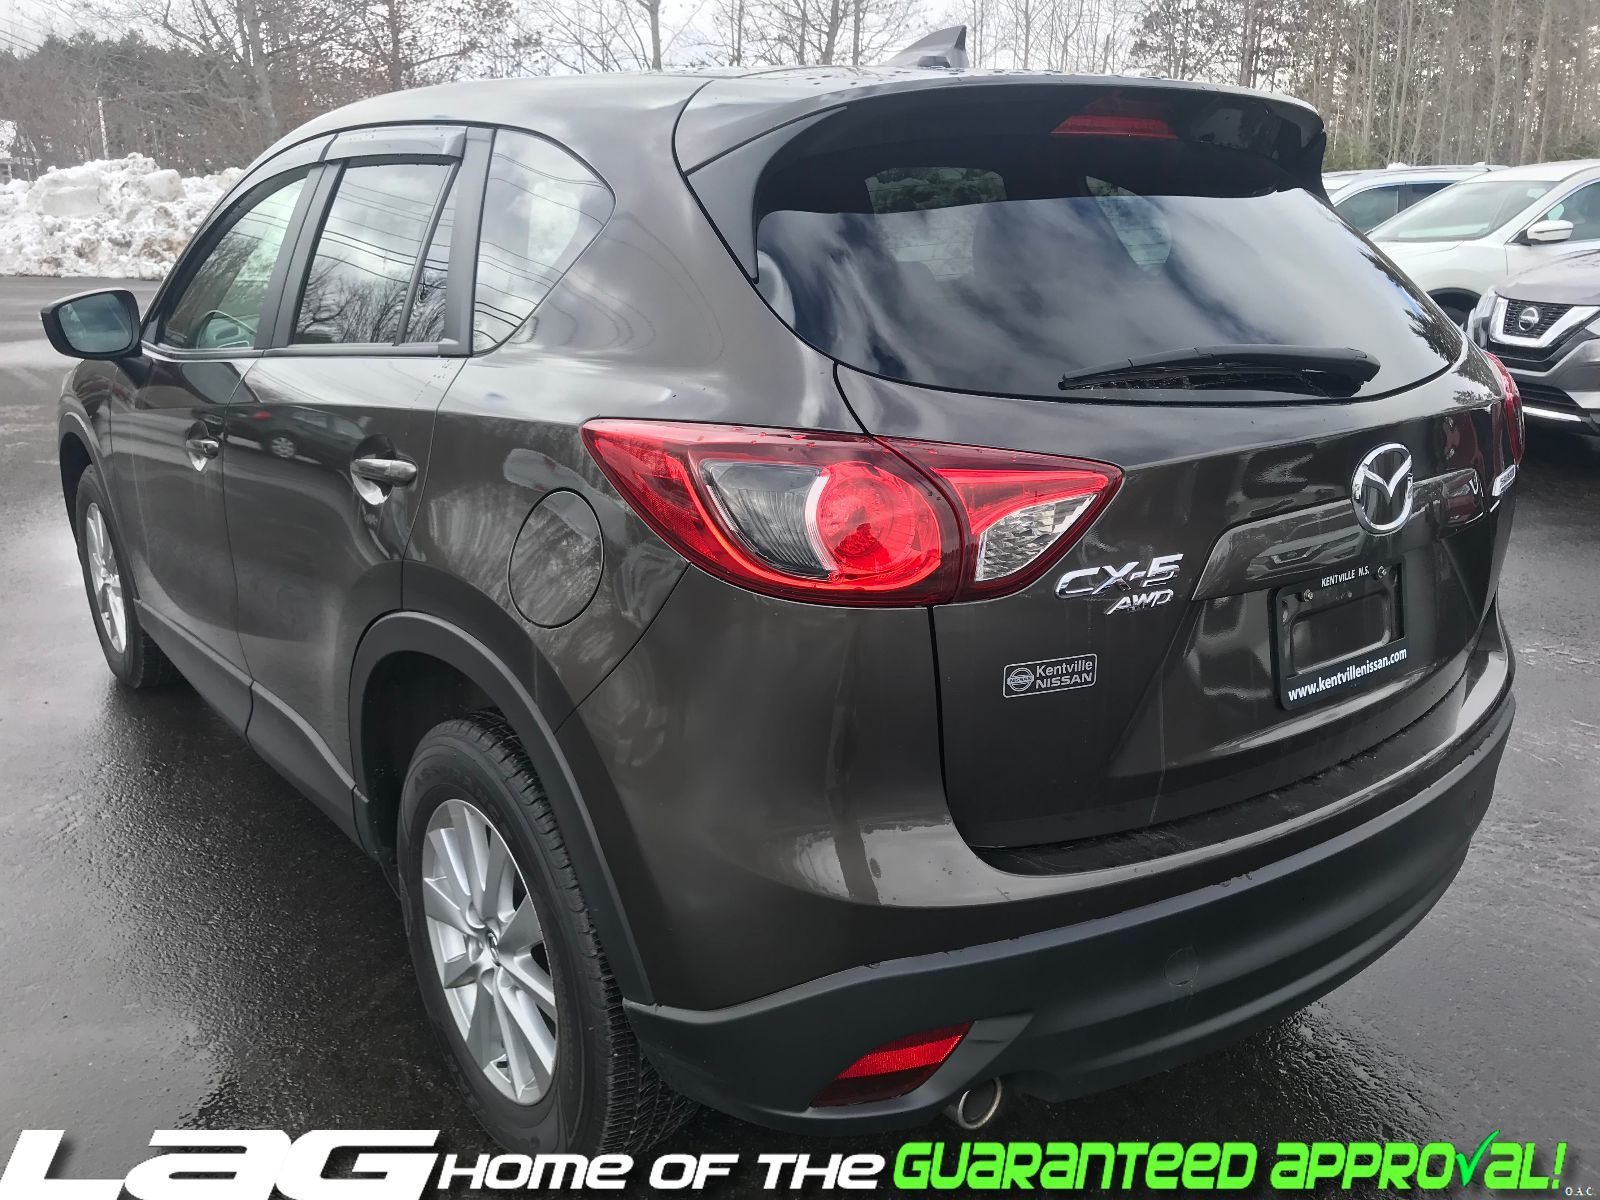 used sale automatique tout detail skyactiv mazda cx ouvrant in page quip eng auto technology for vehicle toit estrie sold fwd jn